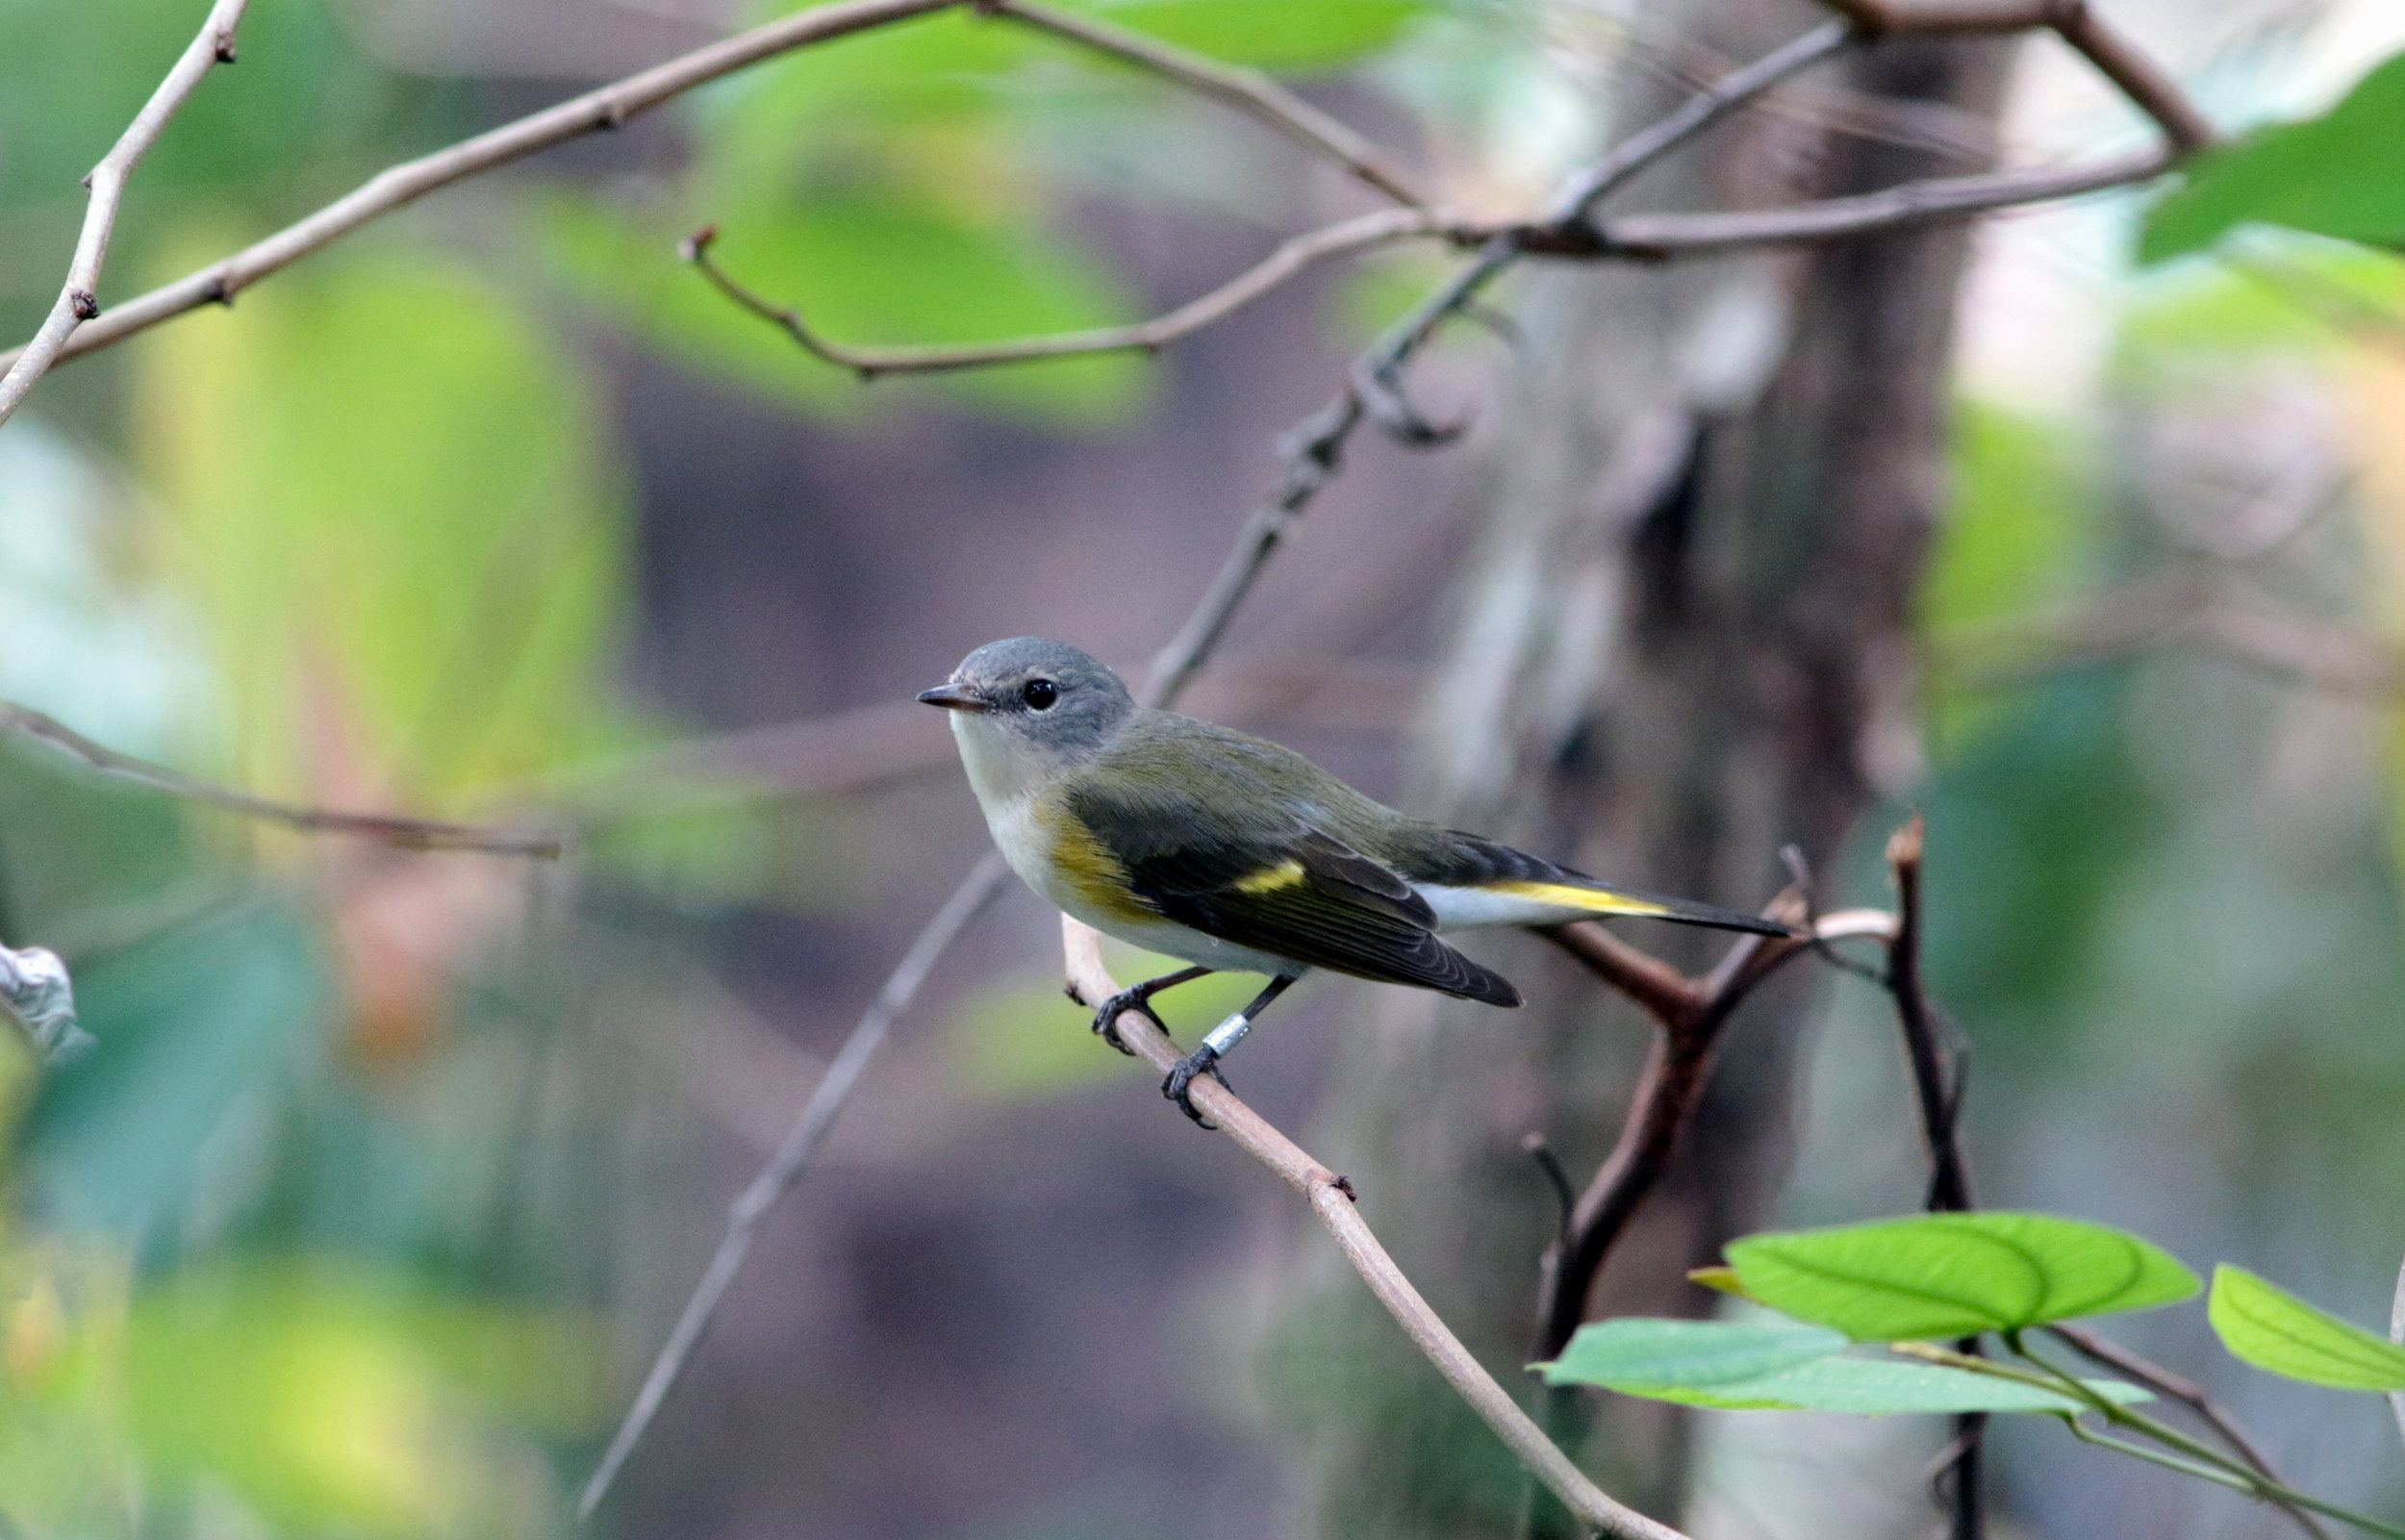 An American Redstart that we banded on 5/22/17 was photographed on its wintering grounds in Brasil! This bird was photographed in Boa Vista, State of Roraima, Brasil, which is roughly 4,775 km away from where she was banded, if one were to take a direct route, which birds rarely do. That is quite the distance for a bird that weighs roughly 9 grams!